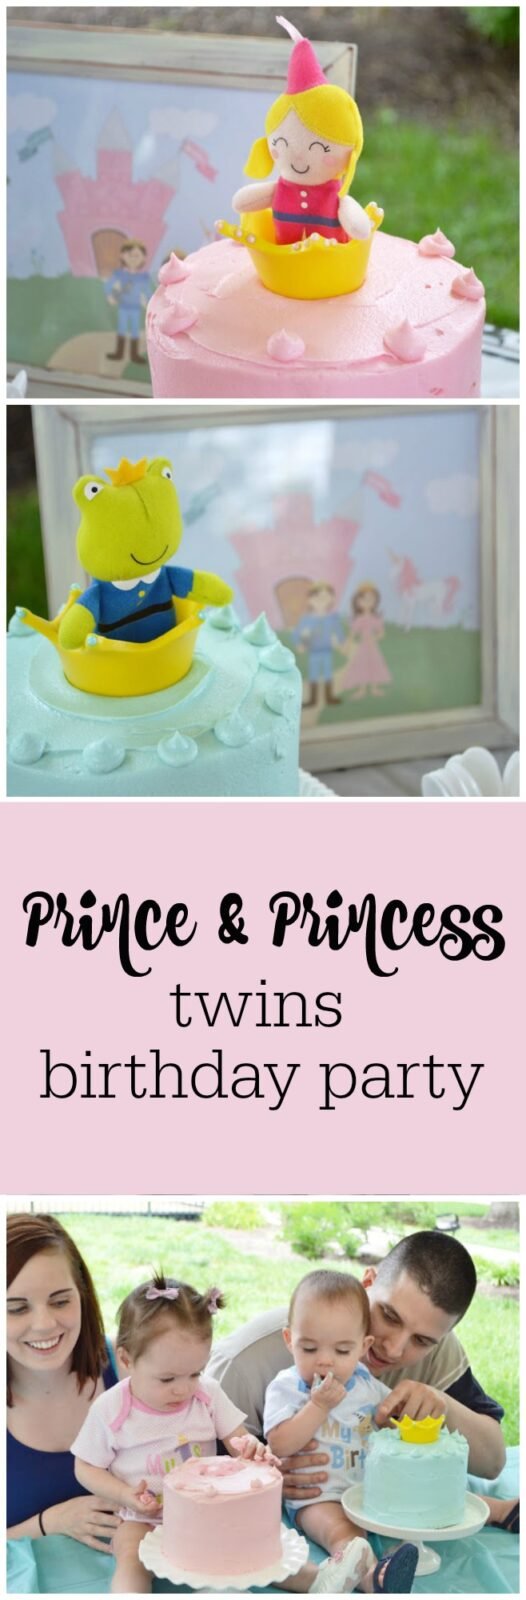 Prince and princess first birthday party for twins by Sunny by Design featured on The Party Teacher